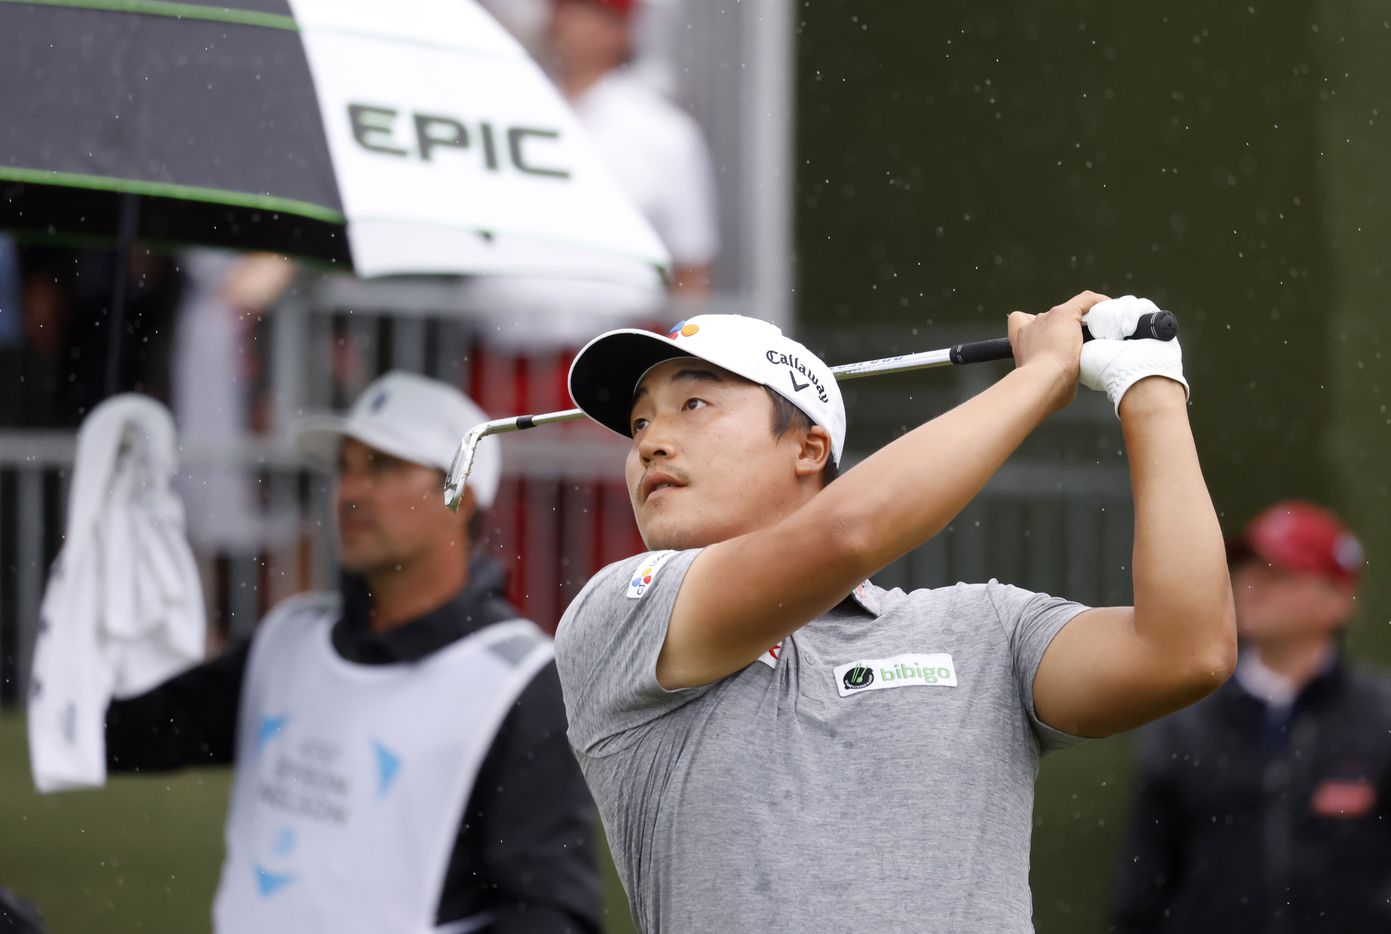 Kyoung-Hoon Lee after hitting from the tee box on the 17th hole during round 4 of the AT&T Byron Nelson  at TPC Craig Ranch on Saturday, May 16, 2021 in McKinney, Texas. (Vernon Bryant/The Dallas Morning News)